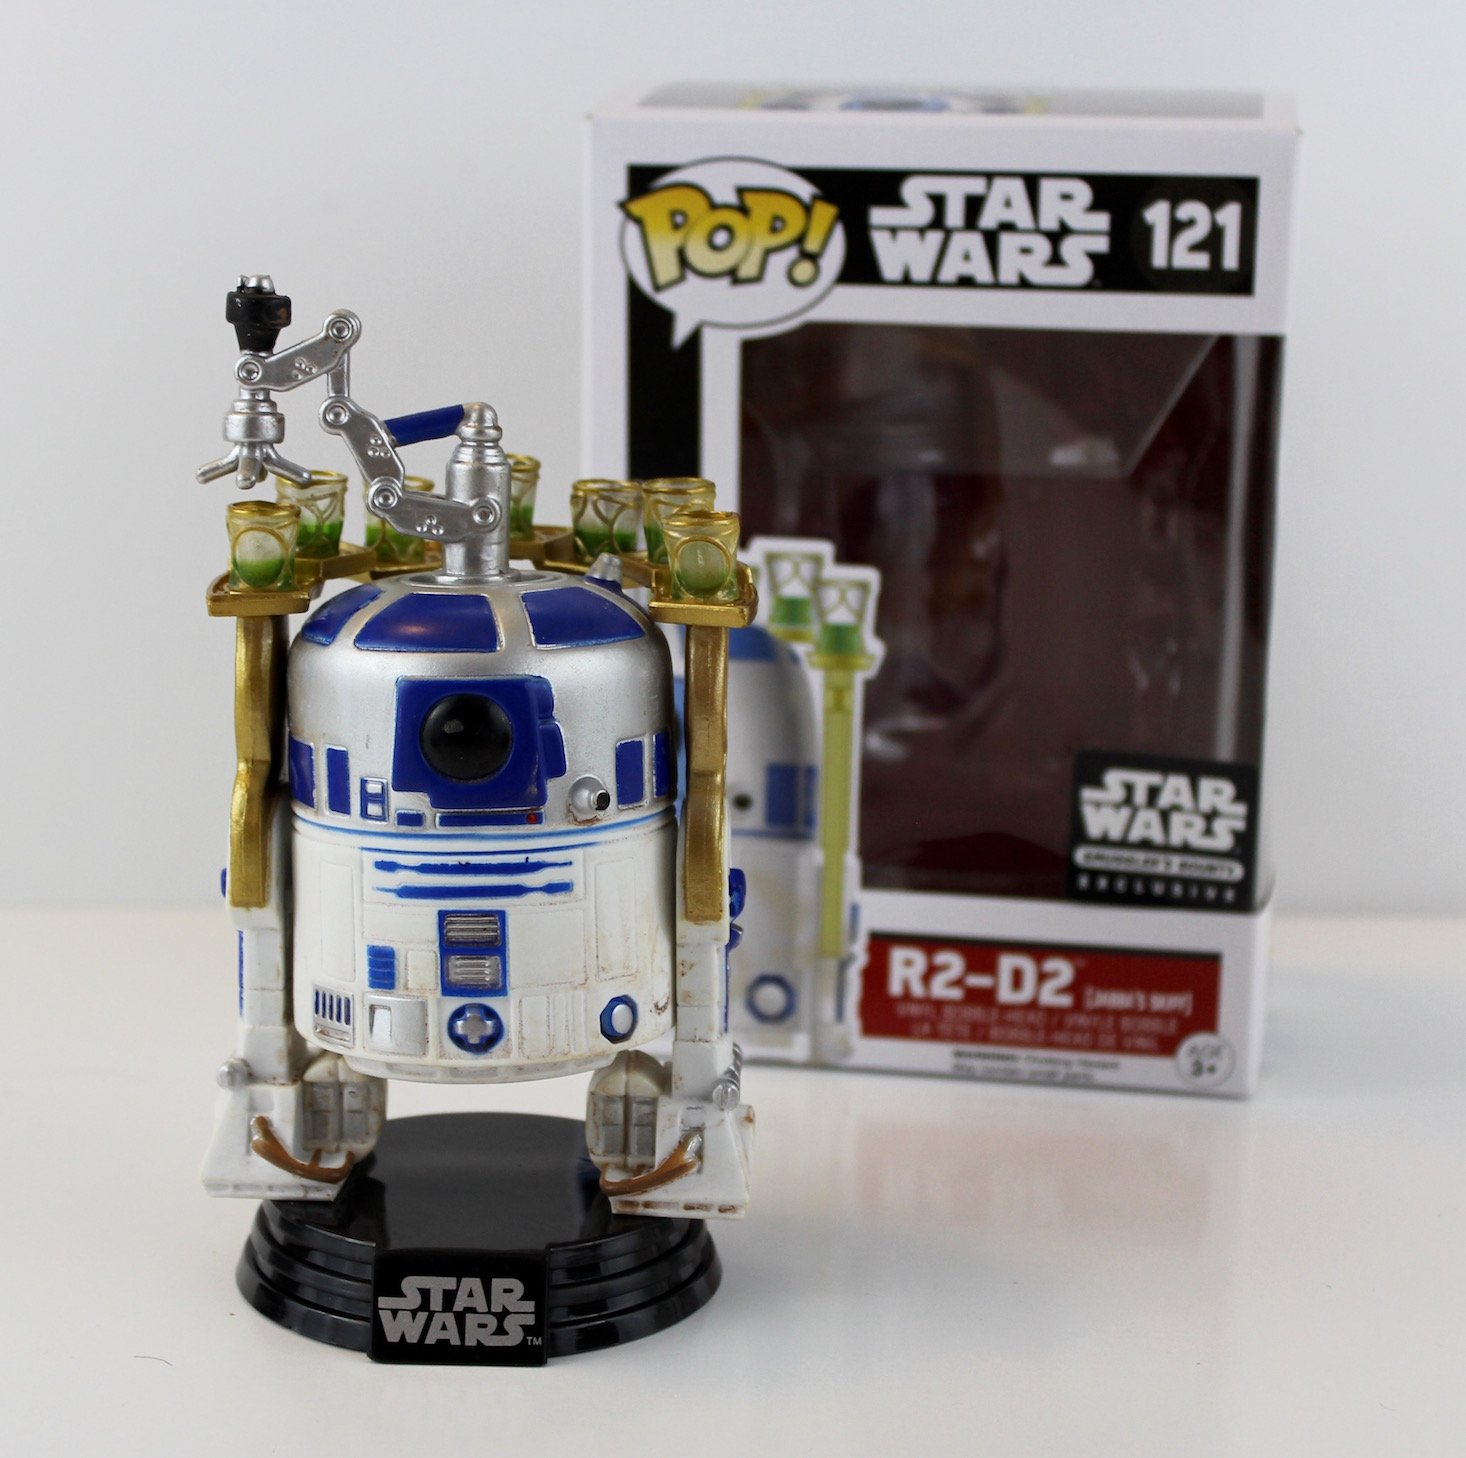 Star Wars Smuggler's Bounty Subscription Box Review Jabba's Palace - R2D2 POP